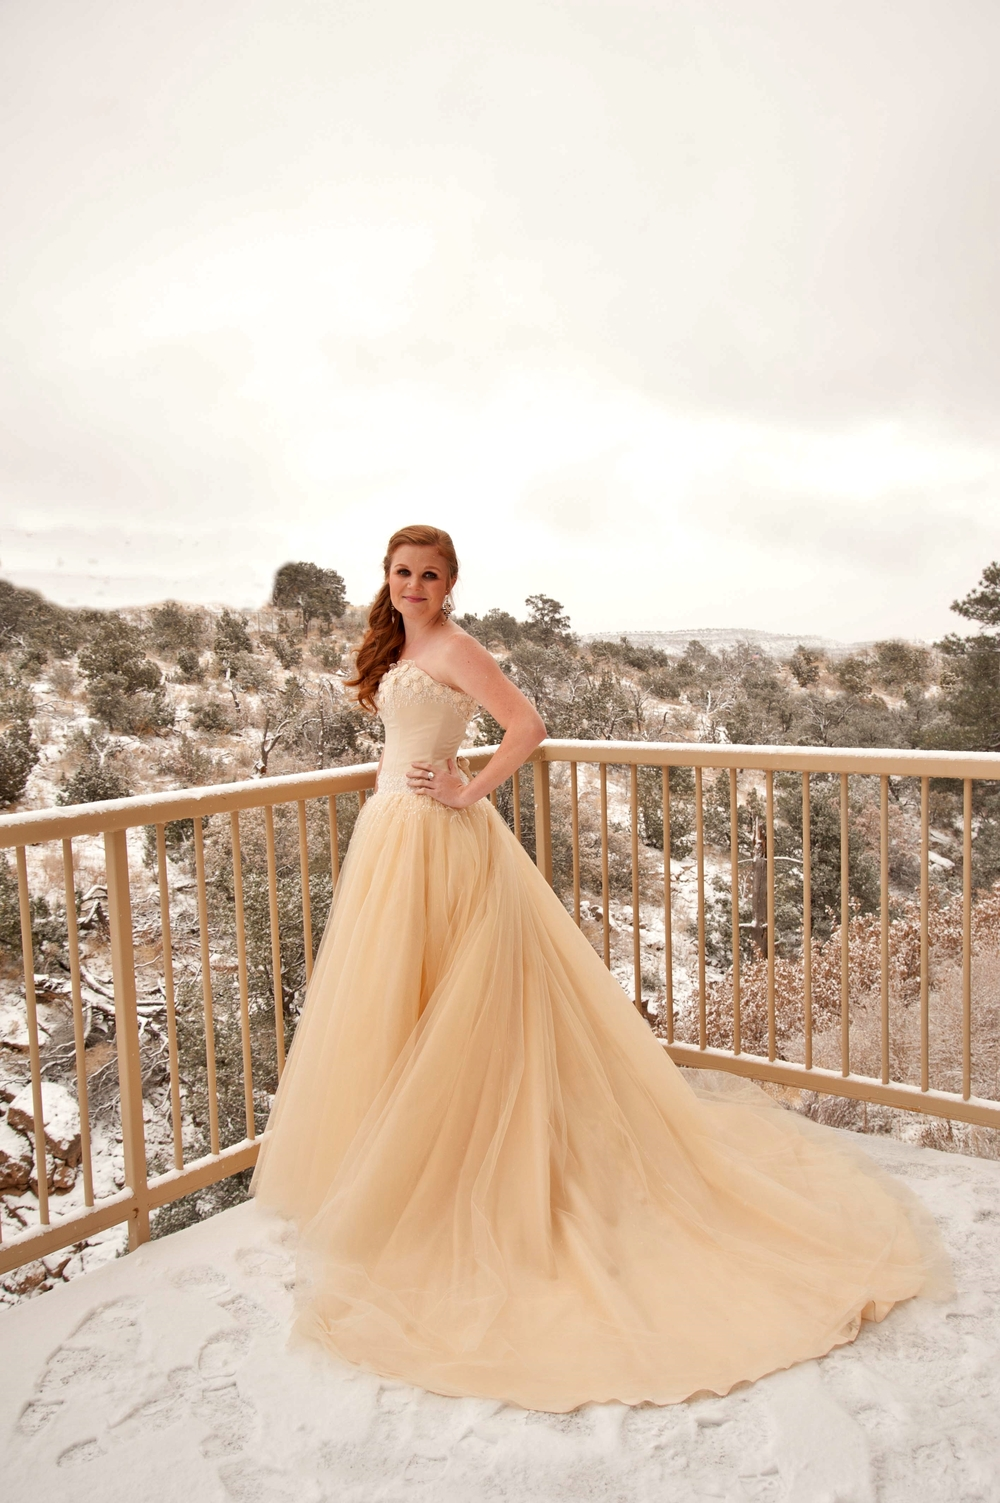 Dusk to Dawn Gown Rentals